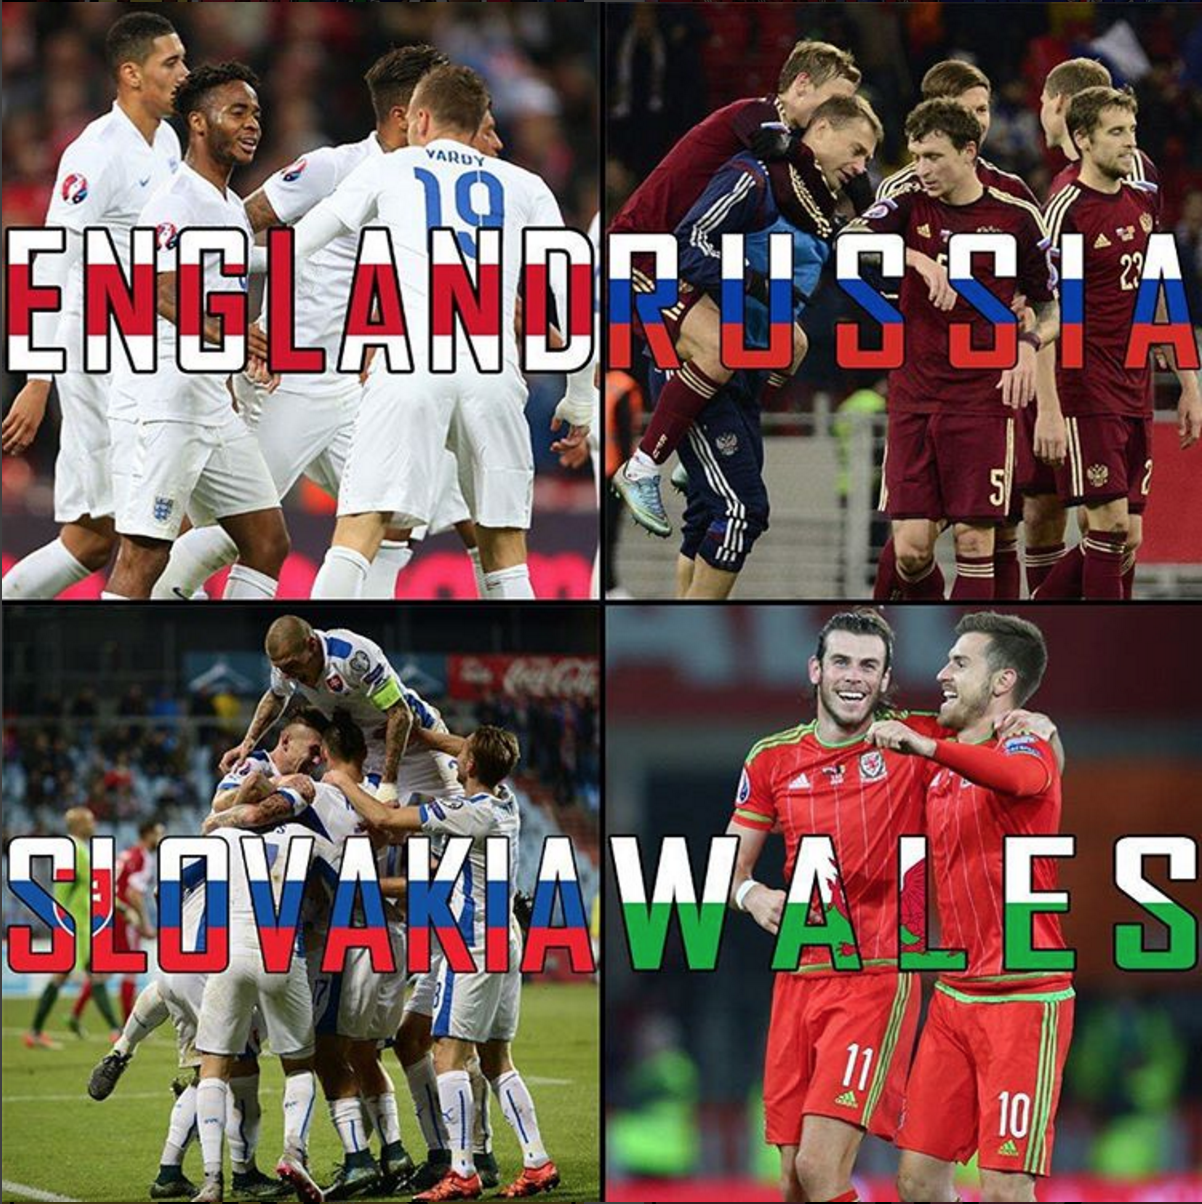 GROUP B — Must-see game: England vs. Wales. Group X factor: England will be rather more confident of escaping this group than they were in Brazil in 2014 after Italy and Uruguay were pulled from that draw, but each opponent presents difficulty, and especially that opening match against the Welsh.